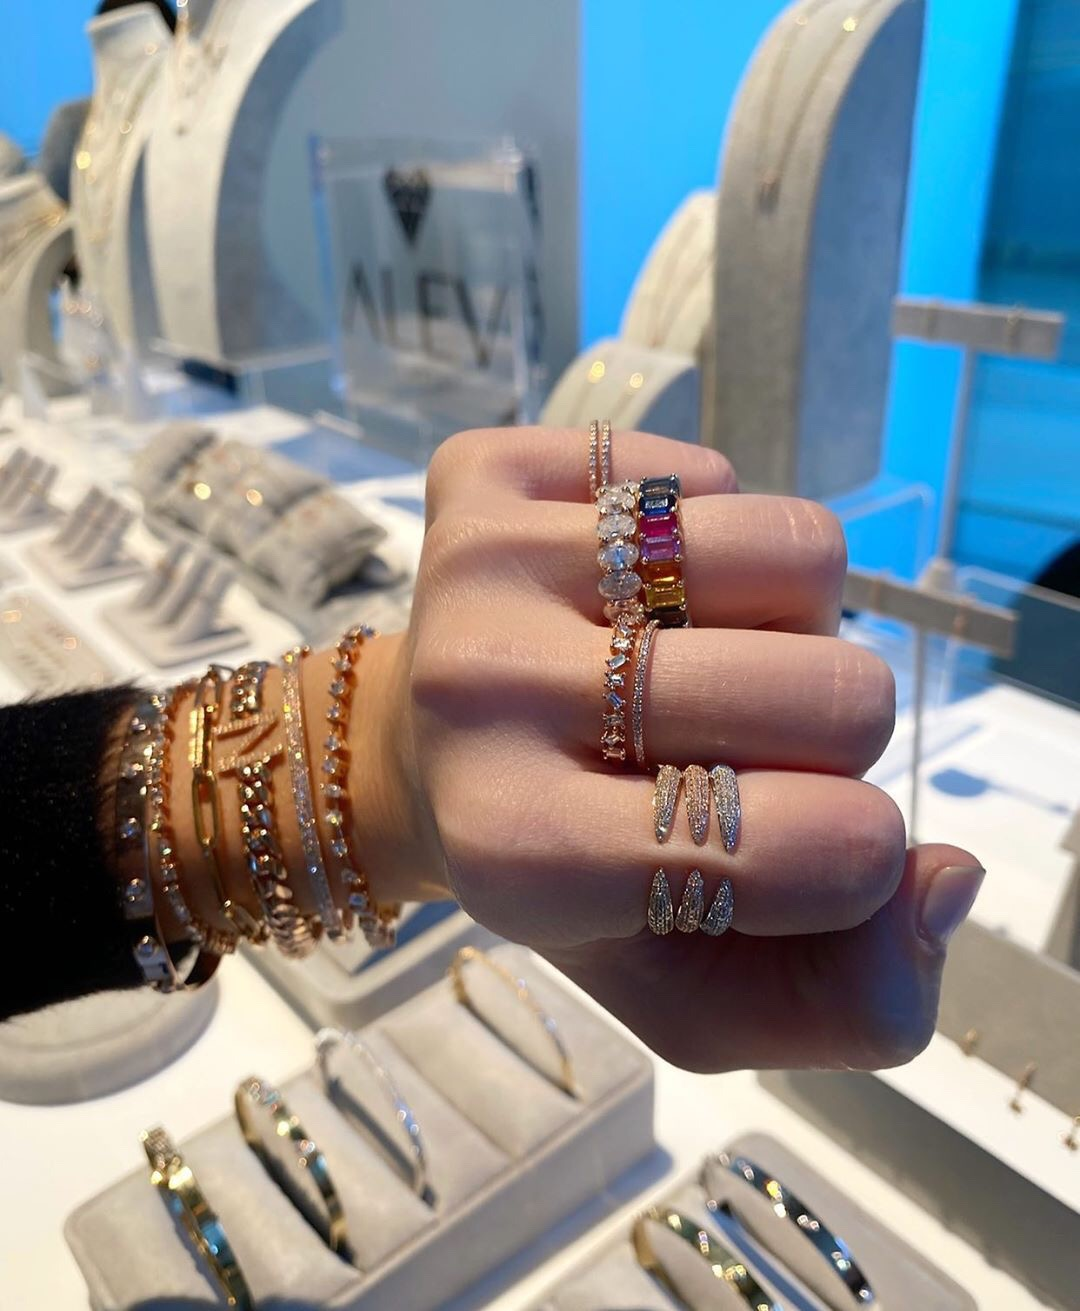 Alev Jewelry rings